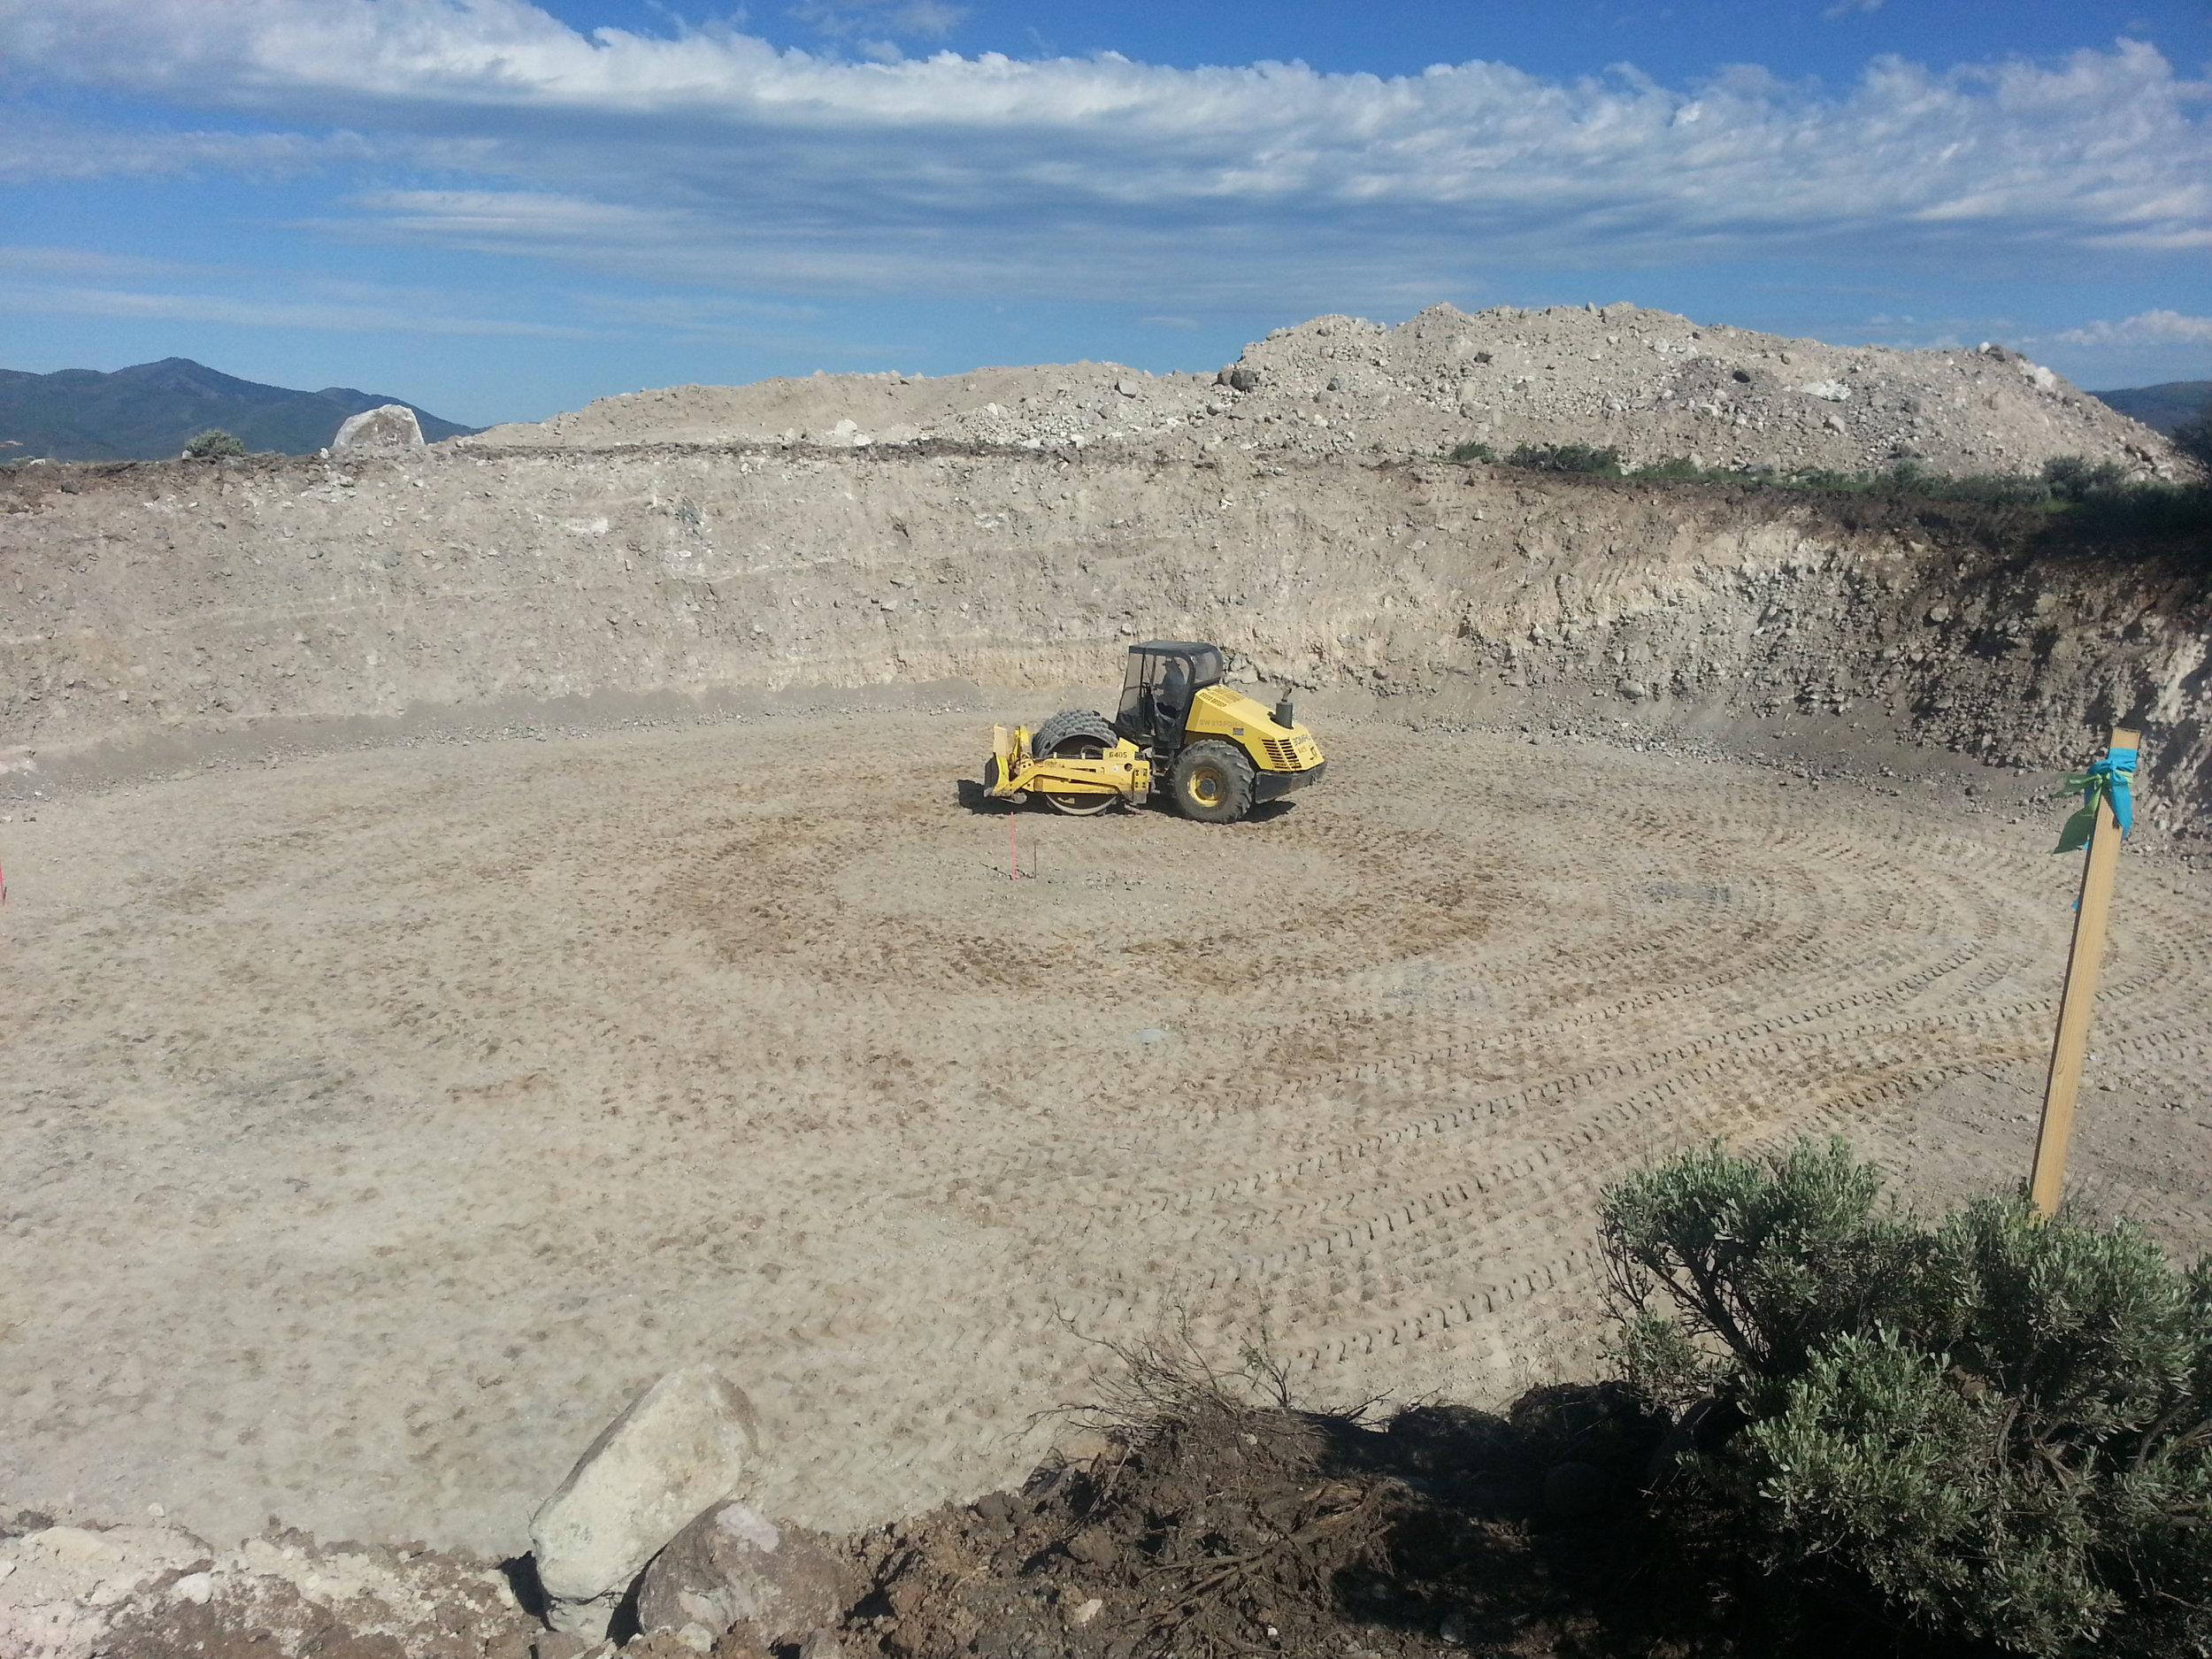 Preparing excavation for new 1 million gallon water tank on the south end of Promontory.